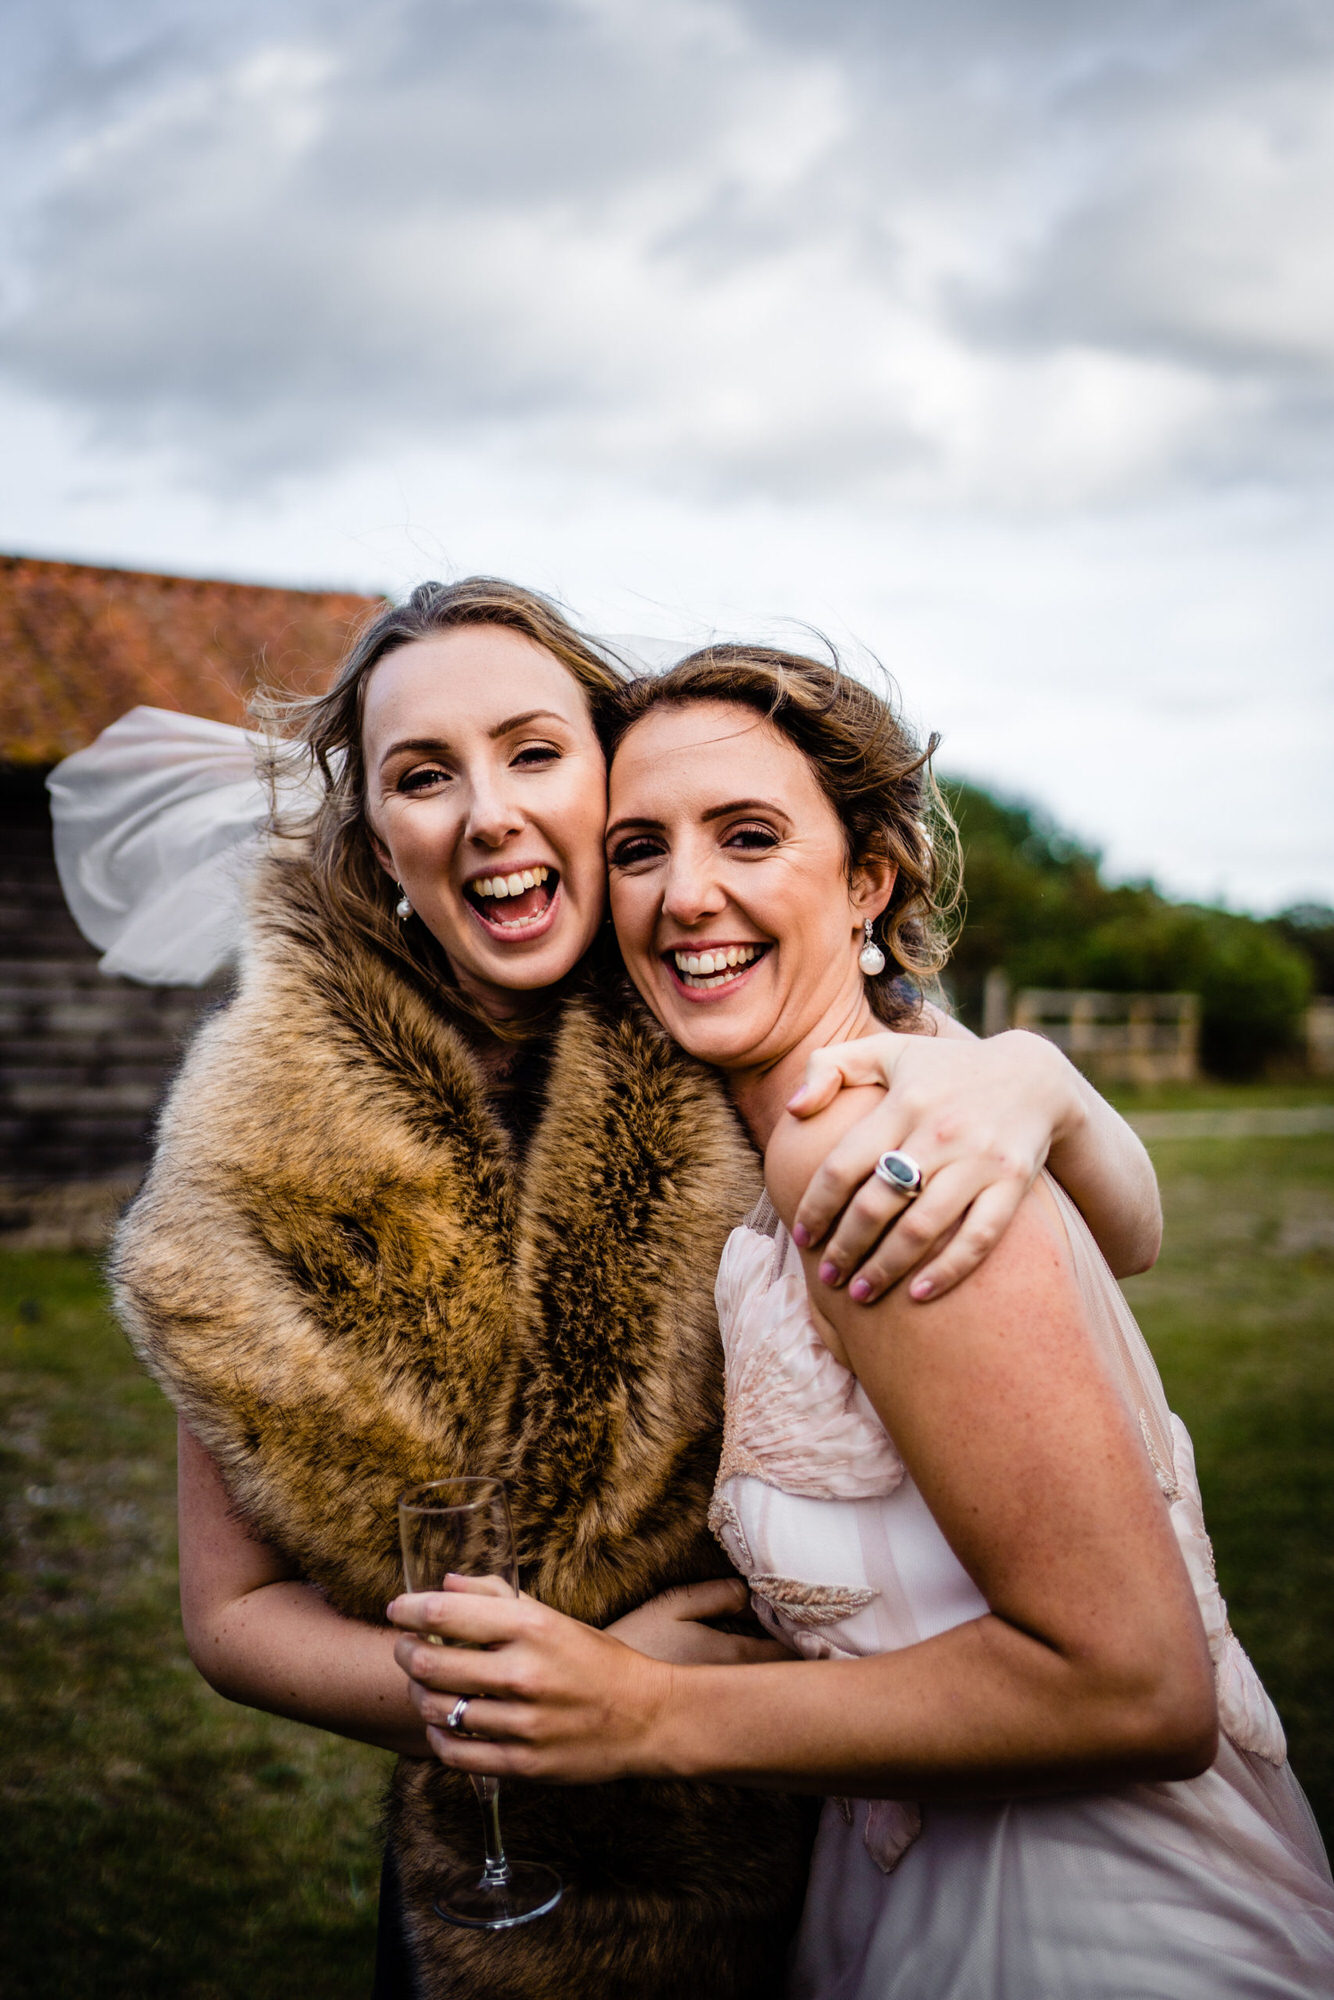 Wedding Day at Henham Park Barns